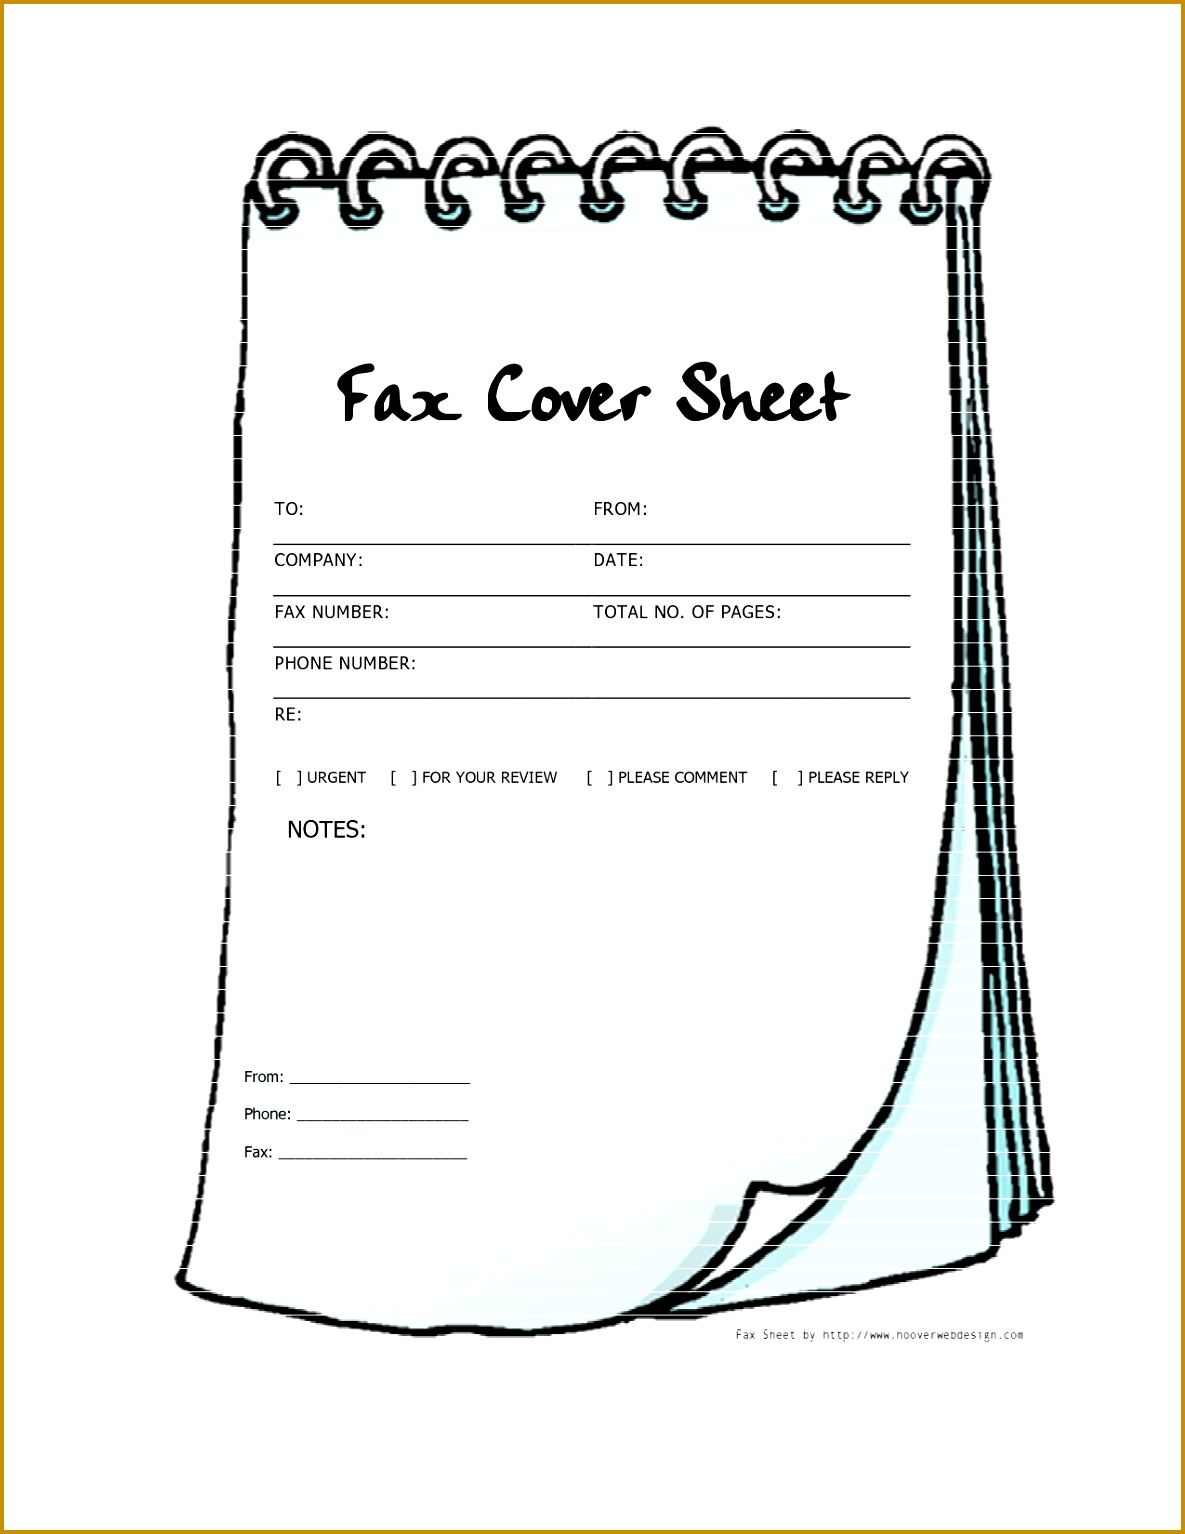 Fax Cover Sheet Word 2010 Pacq Co 11851534